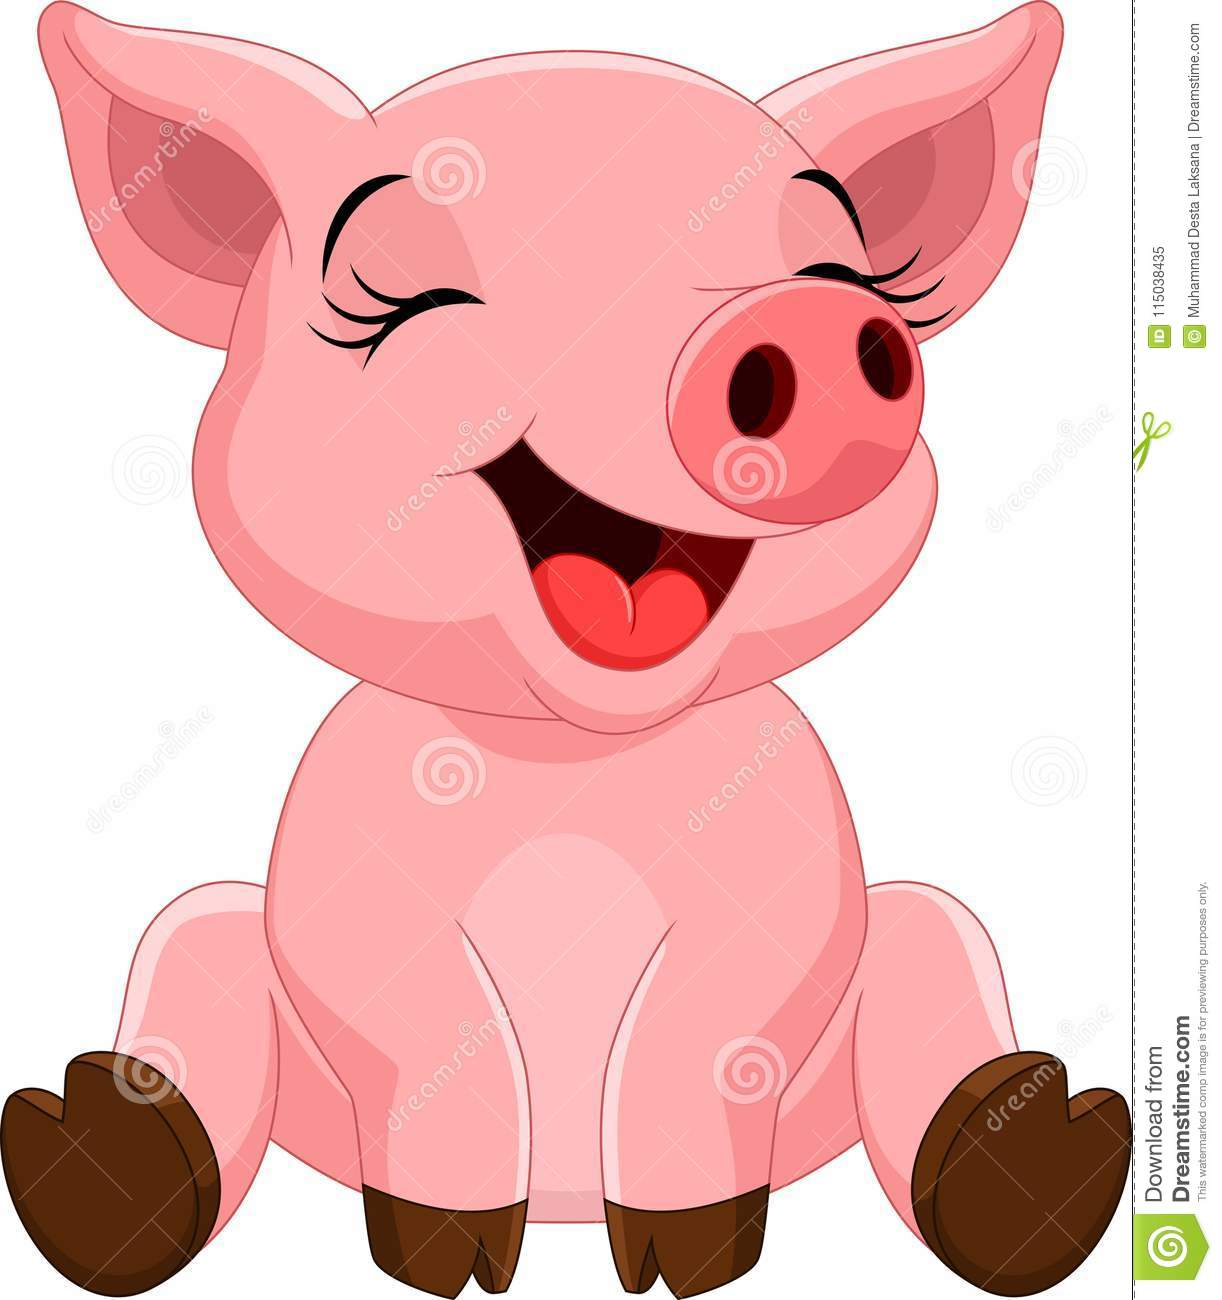 cute pig cartoon sitting stock illustration illustration of